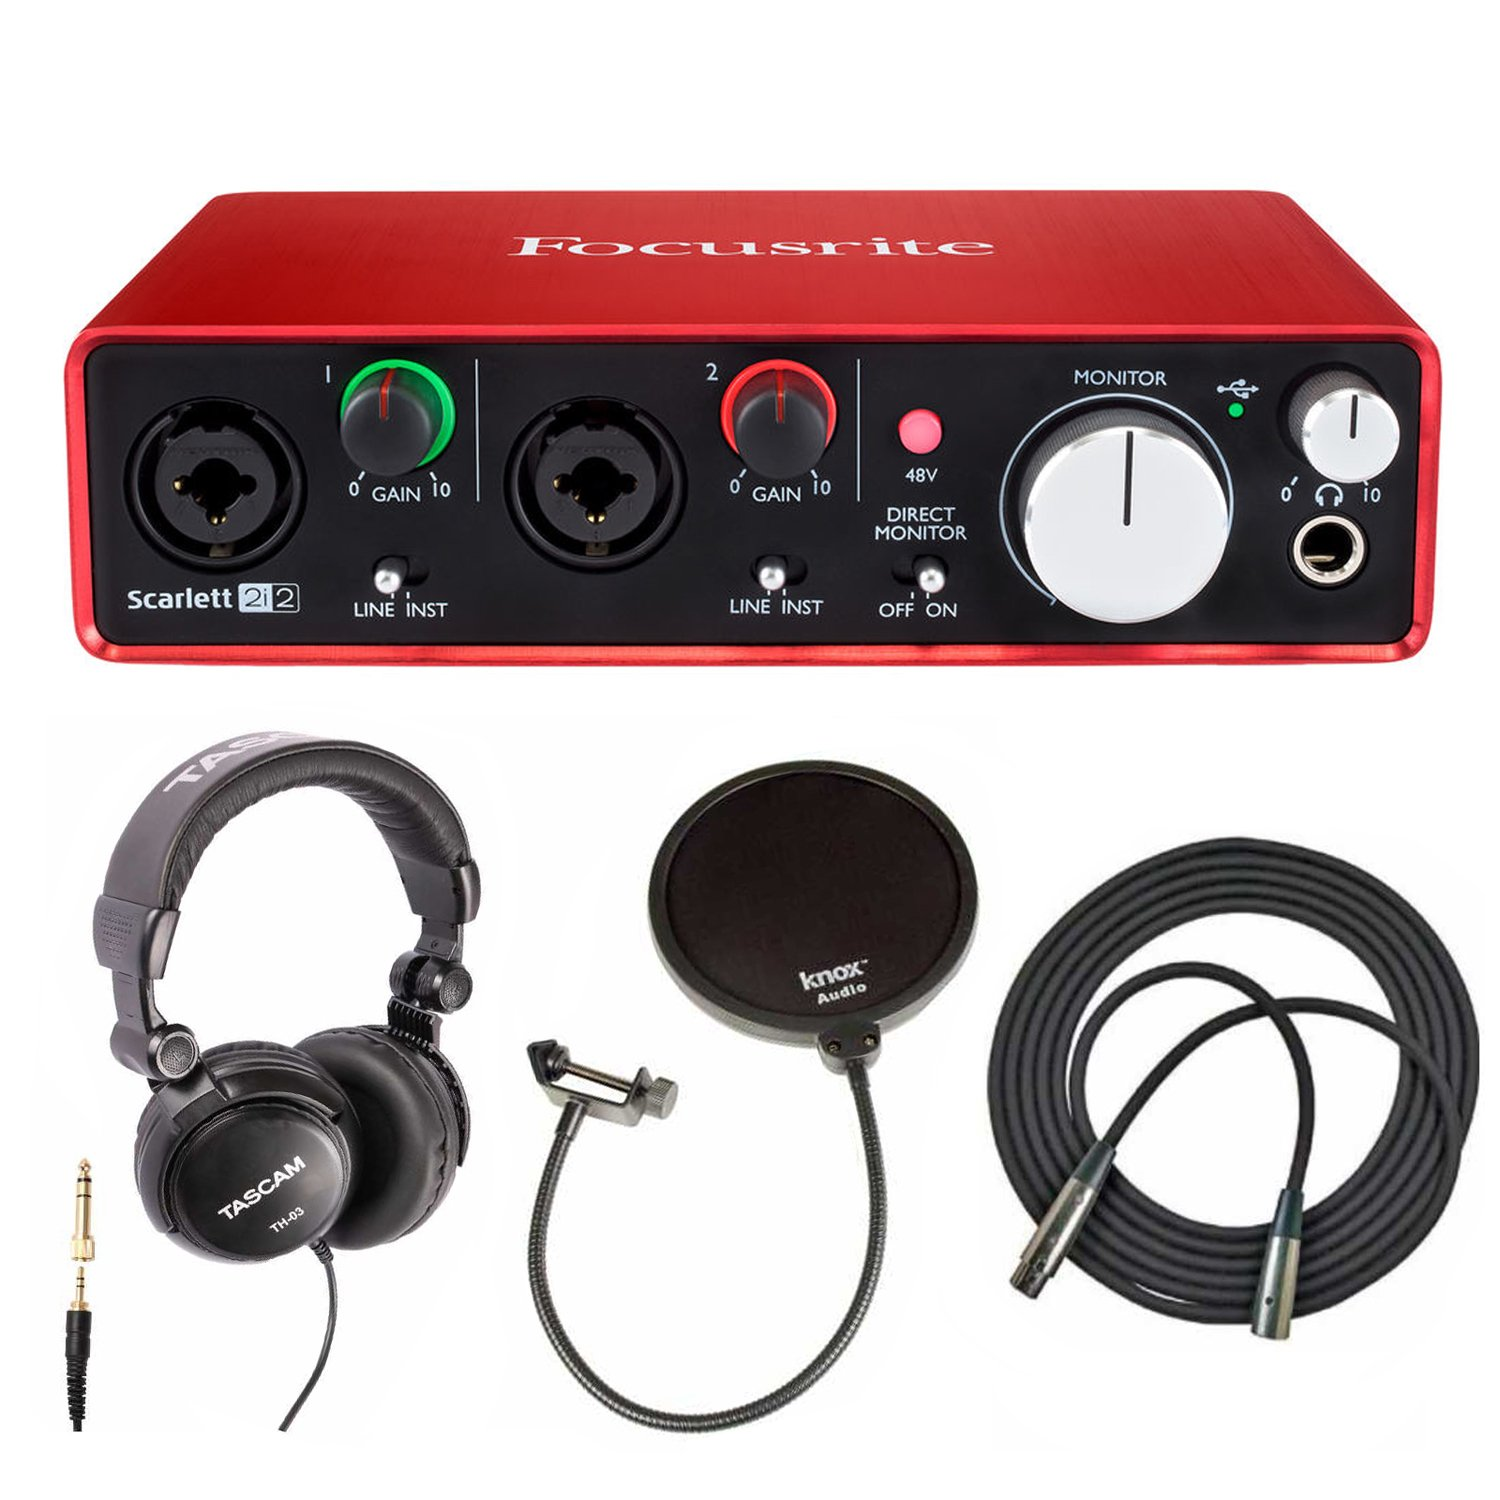 Focusrite Scarlett 2i2 USB Audio Interface (2nd Gen) Includes Pro Tools First with Headphones, Knox Pop Filter and XLR Cable